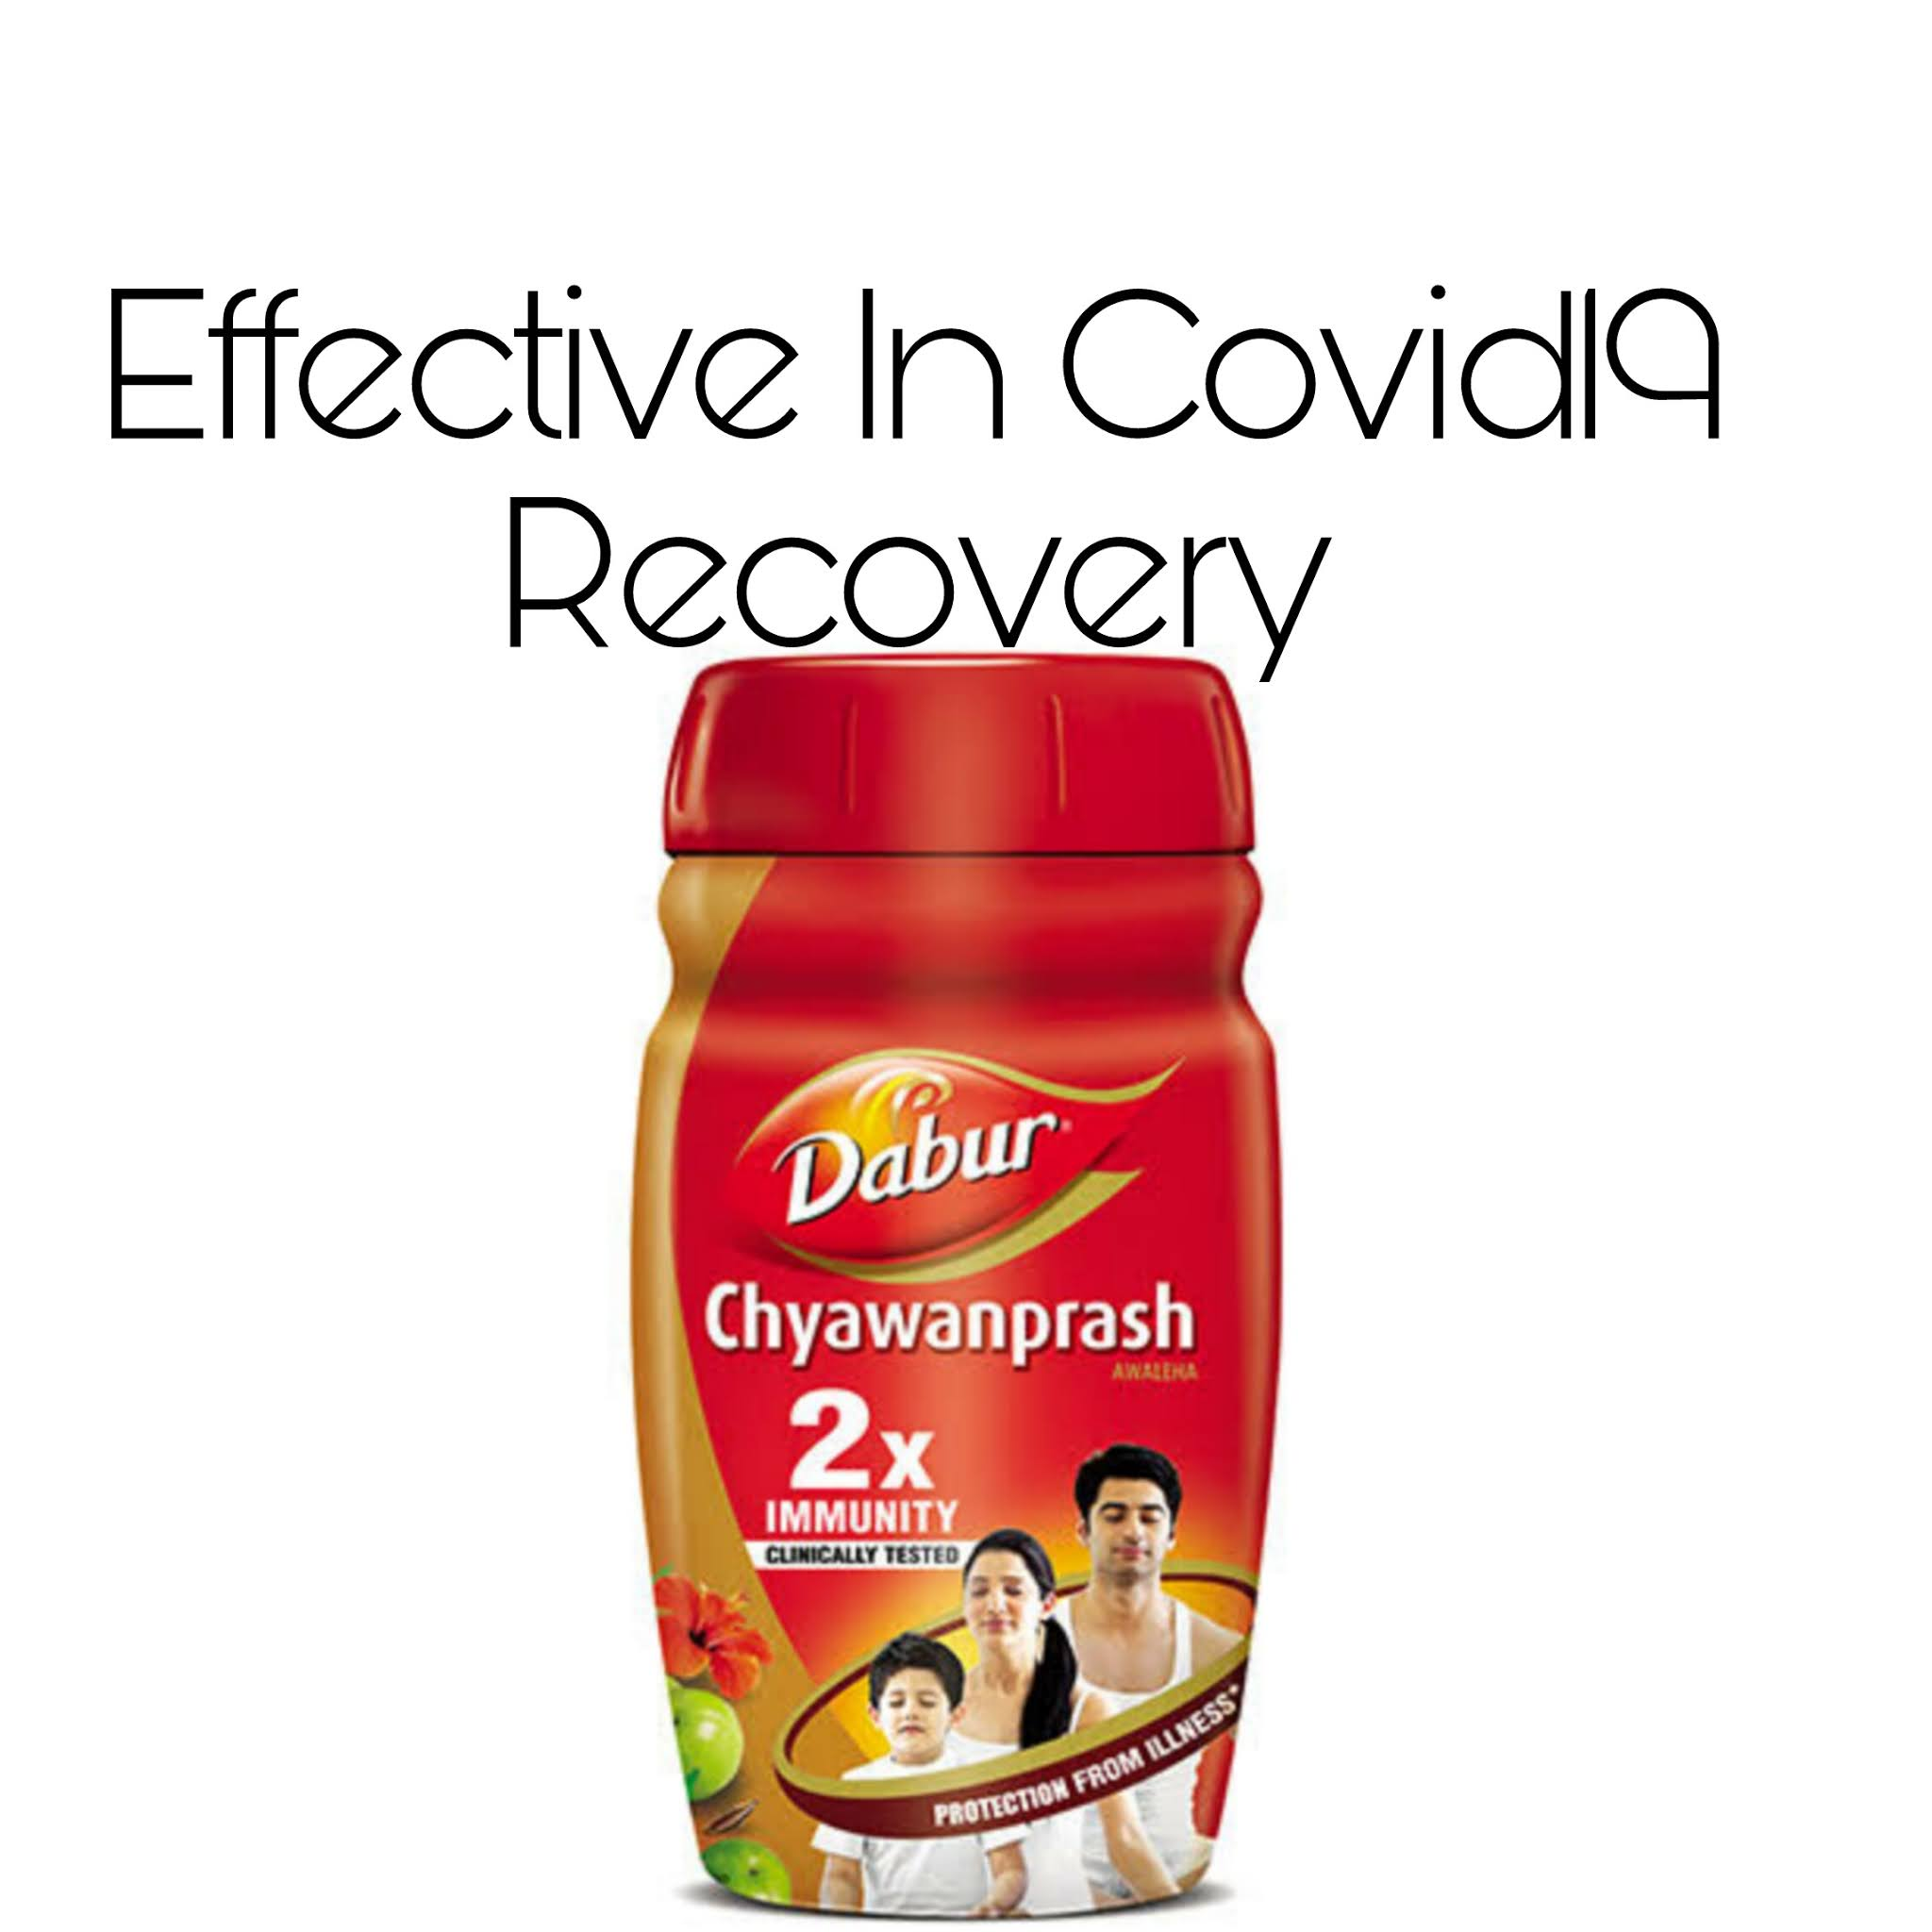 Chyawanprash believed to be effective in post COVID-19 recovery period